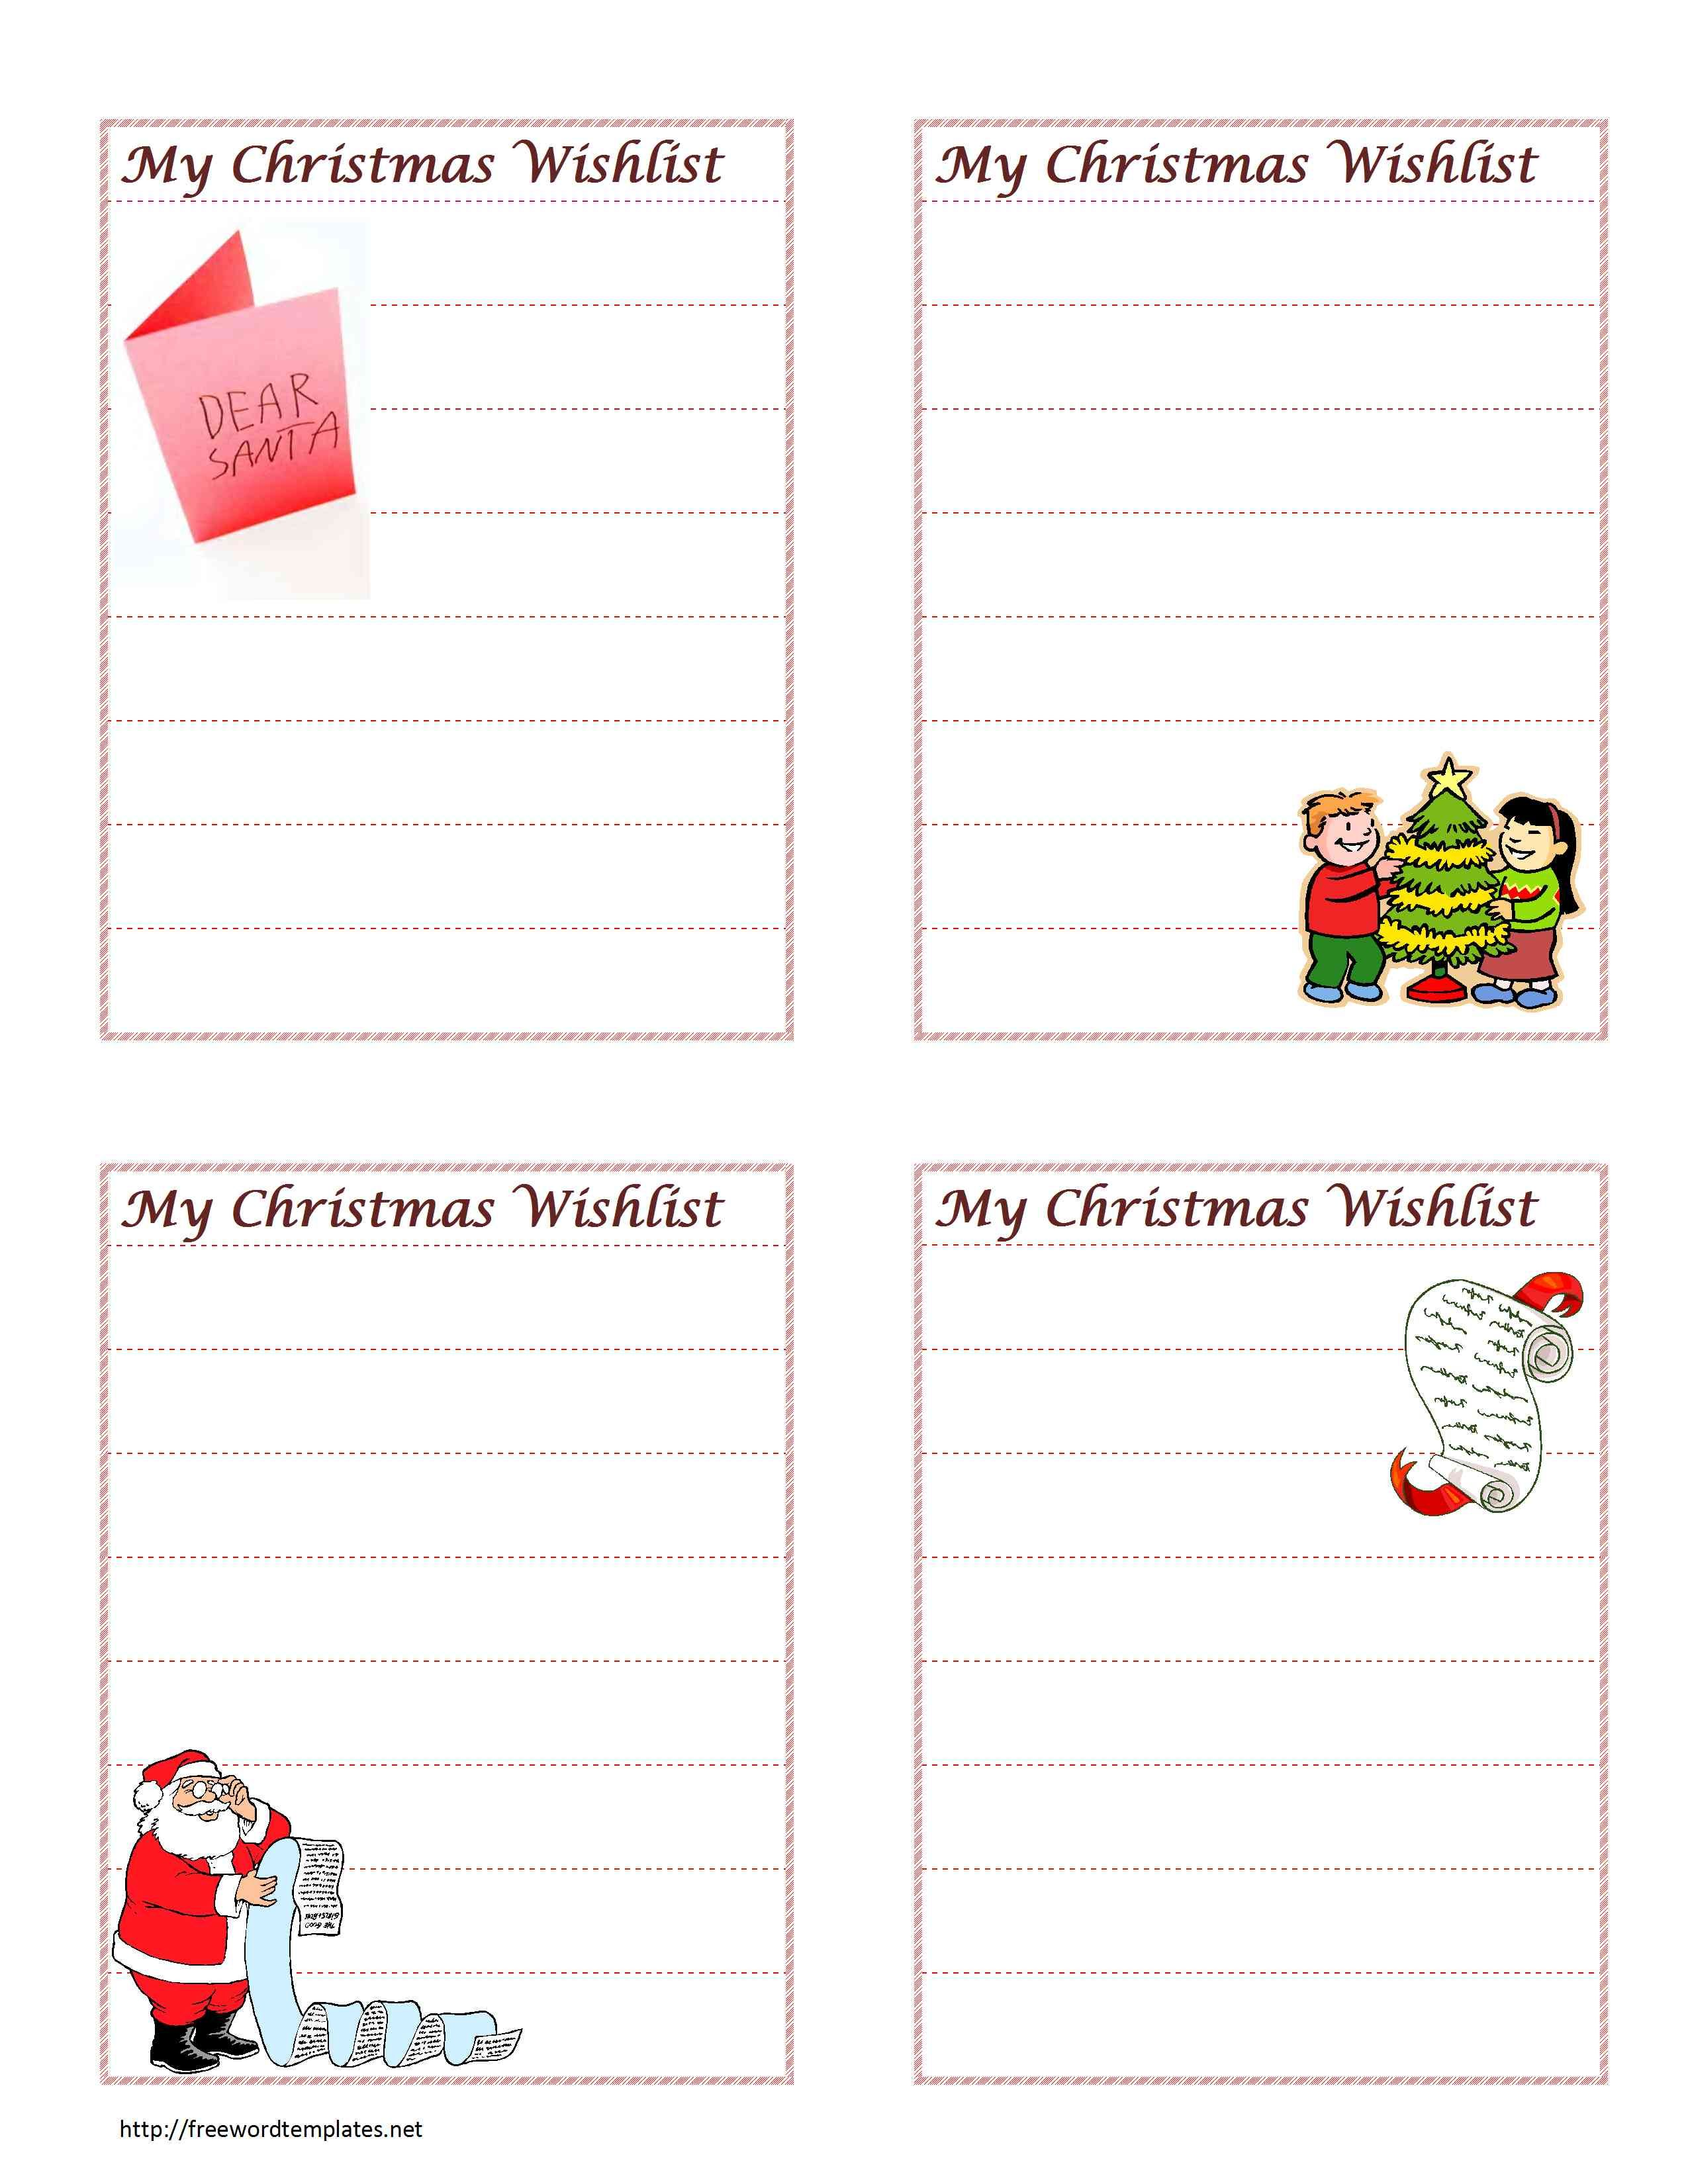 Printable Christmas Crafts  Google Search  Projects To Try